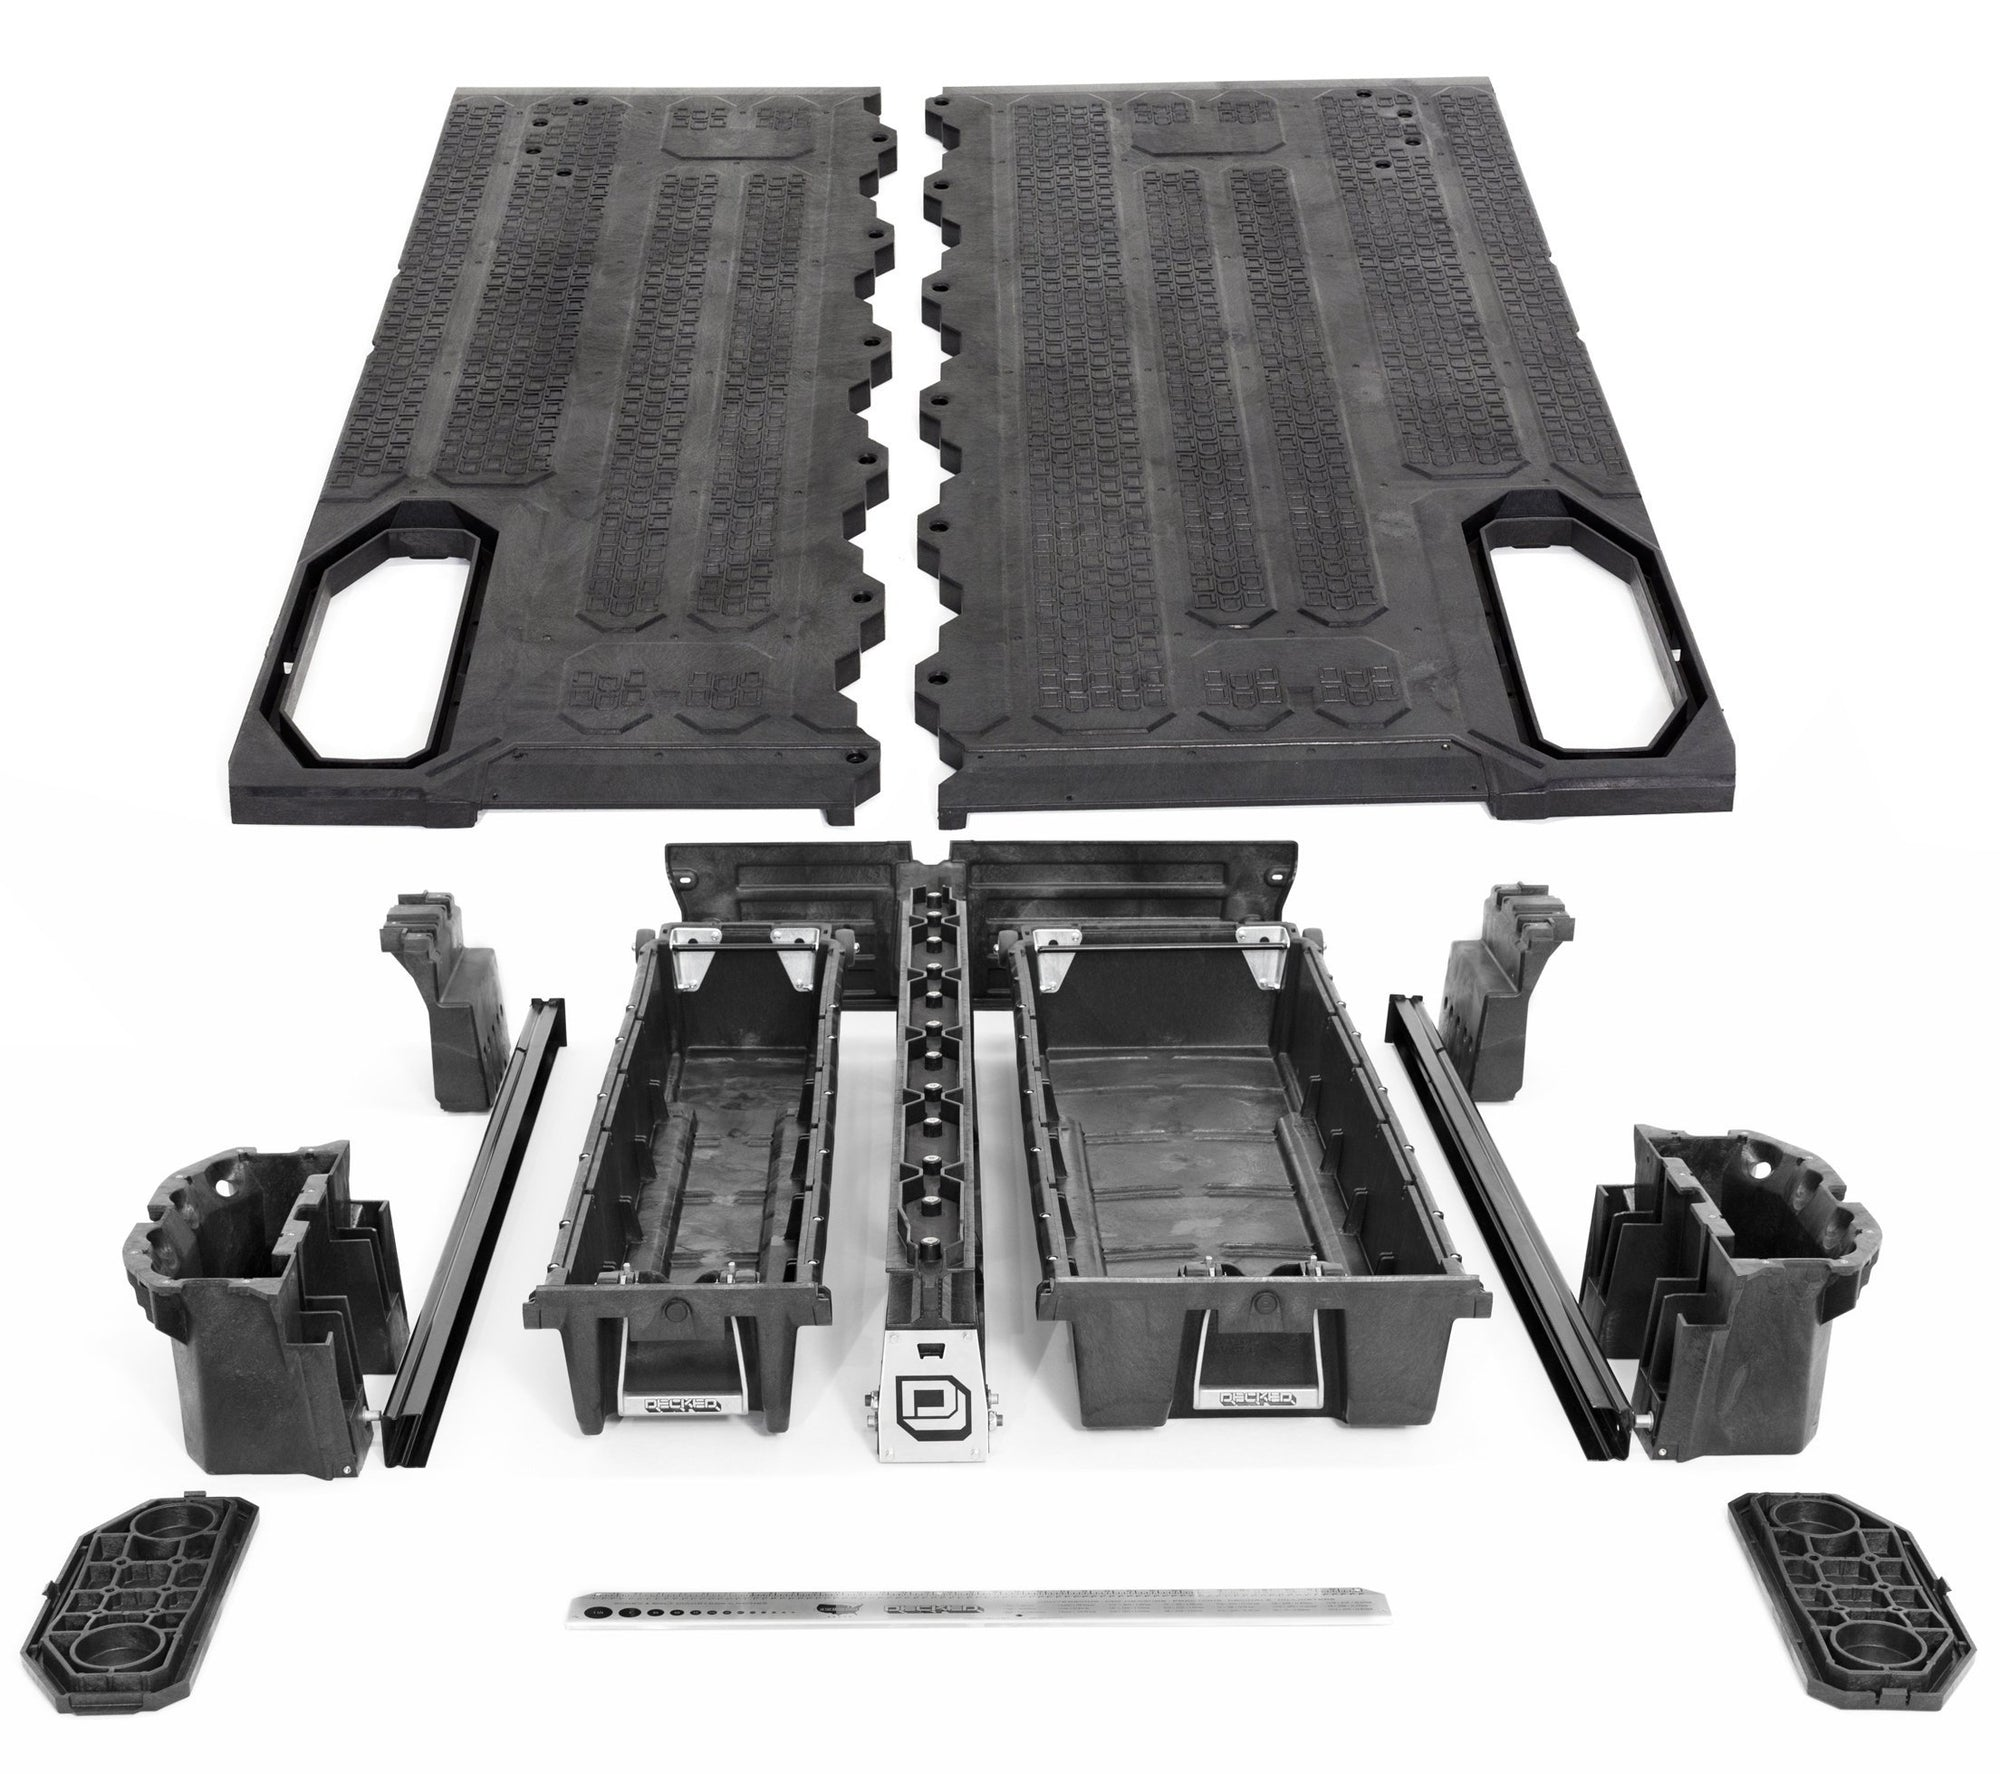 DECKED Nissan Frontier Truck Bed Storage System and Organizer. Current Model.